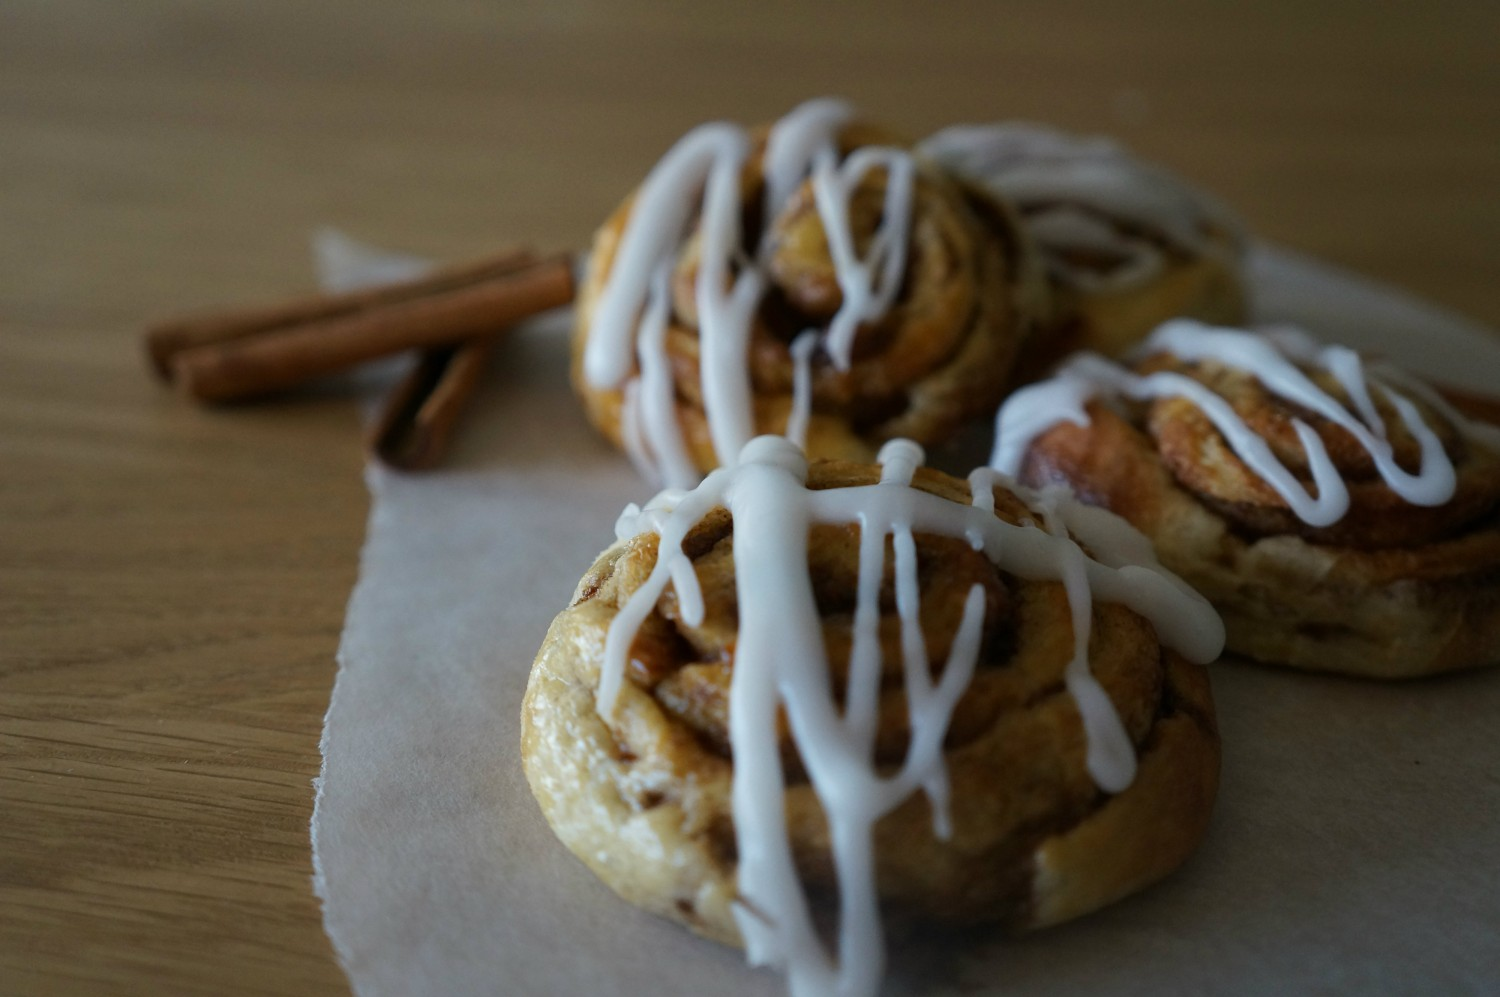 cinnamon-rollsa-with-frosting